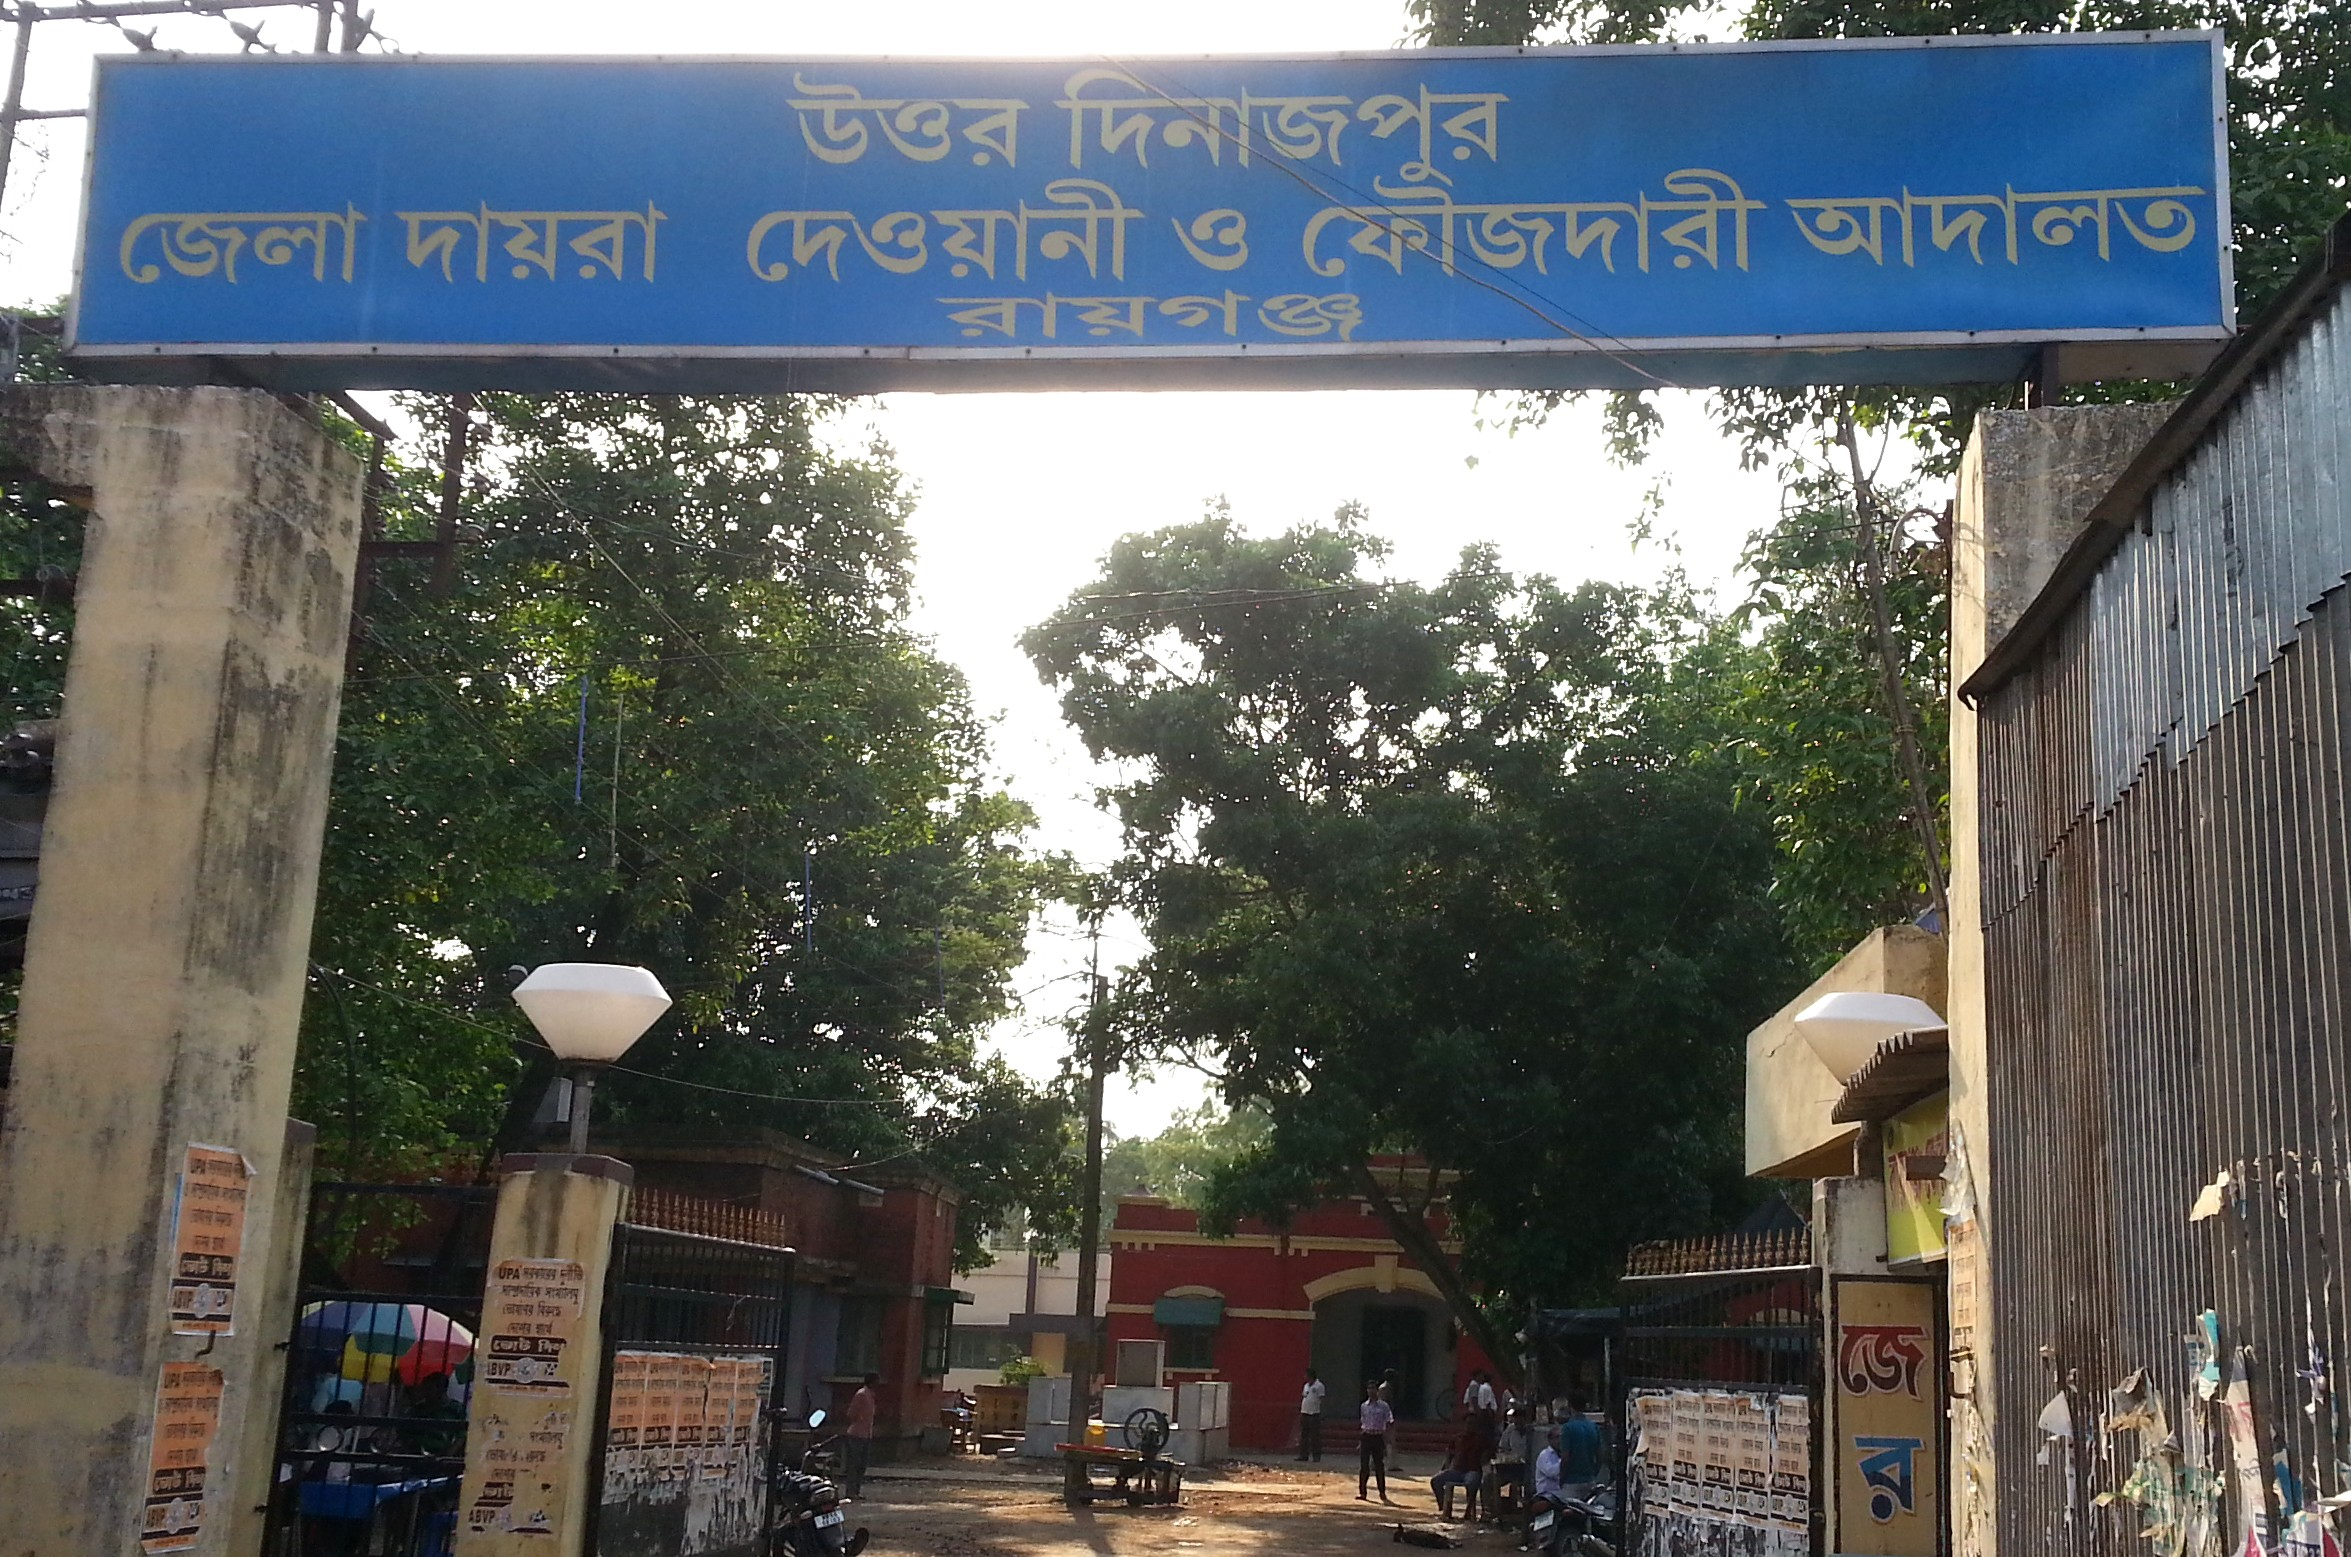 District & Session Court, Raiganj, Uttar Dinajpur